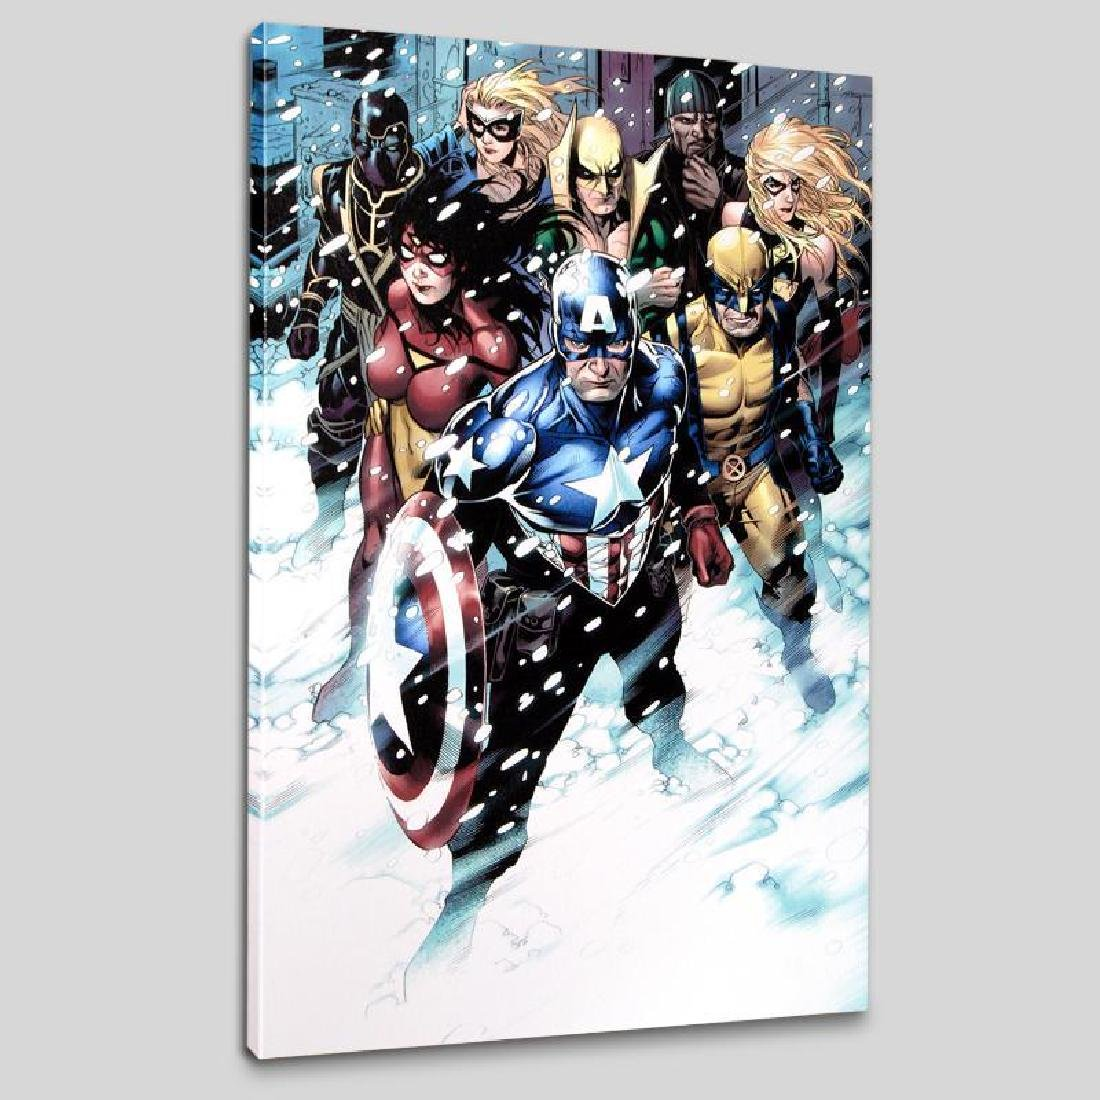 Free Comic Book Day 2009 Avengers #1 by Marvel Comics - 3